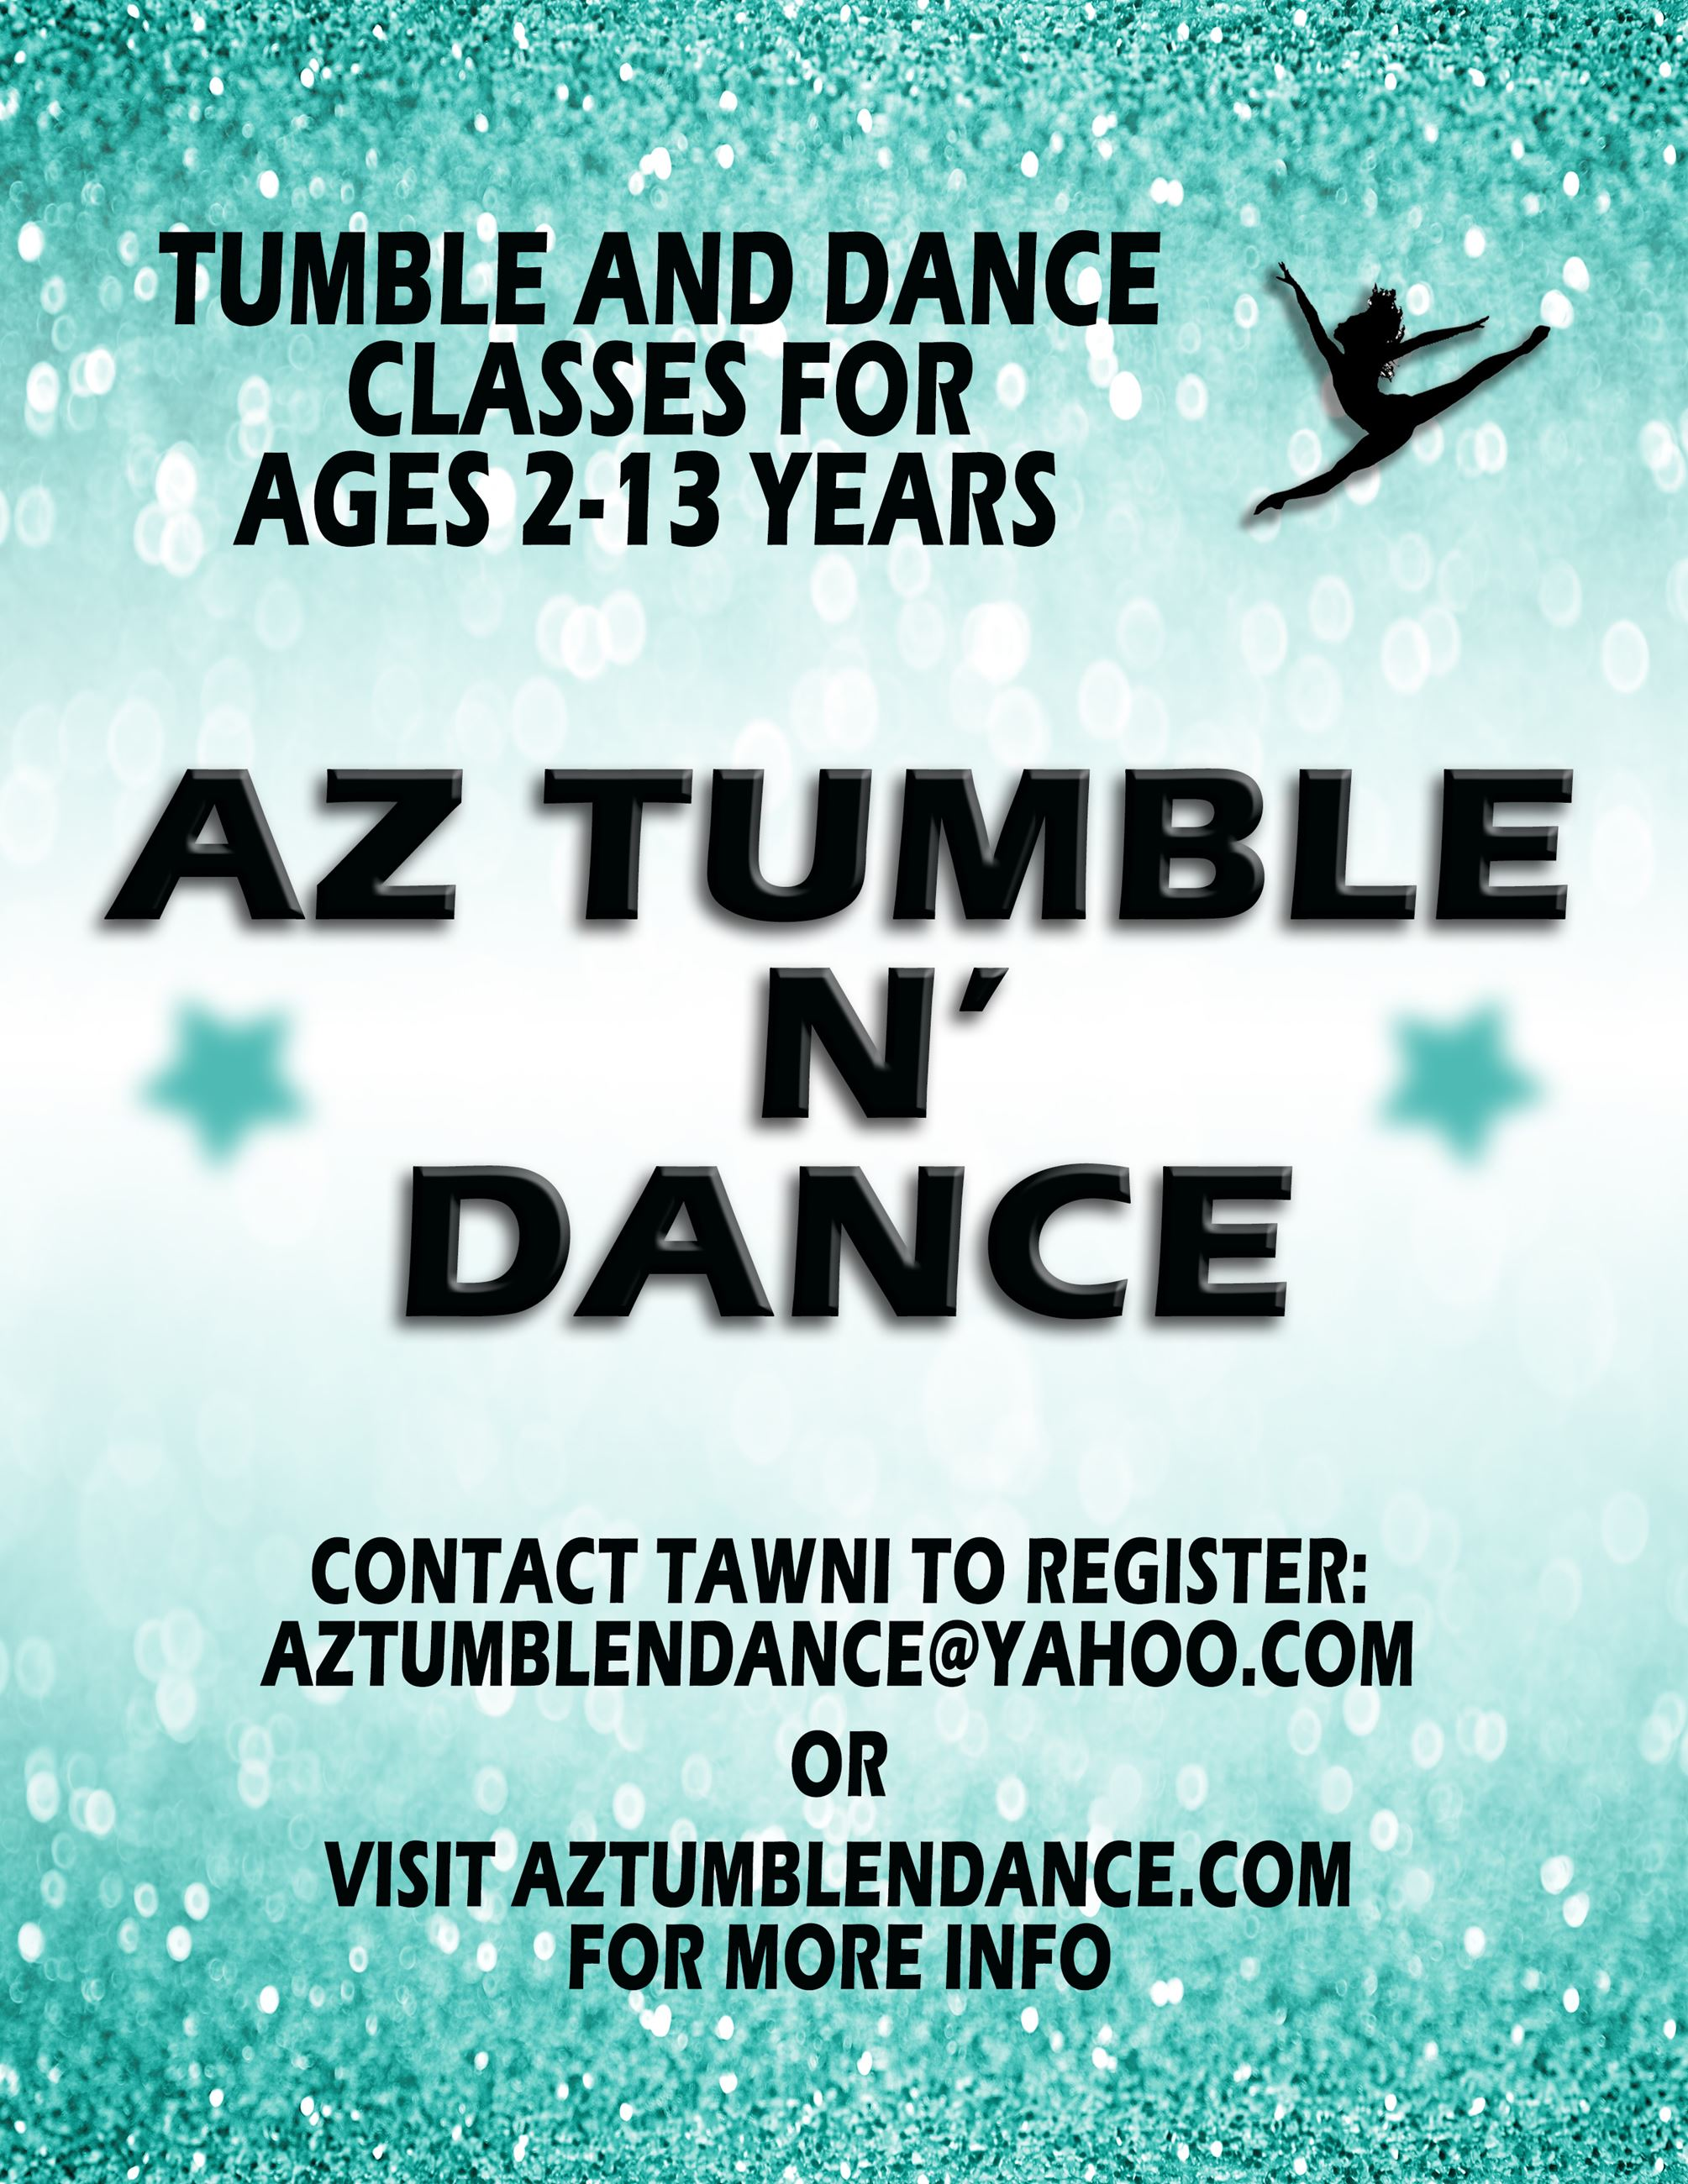 AZ Tumble N Dance General